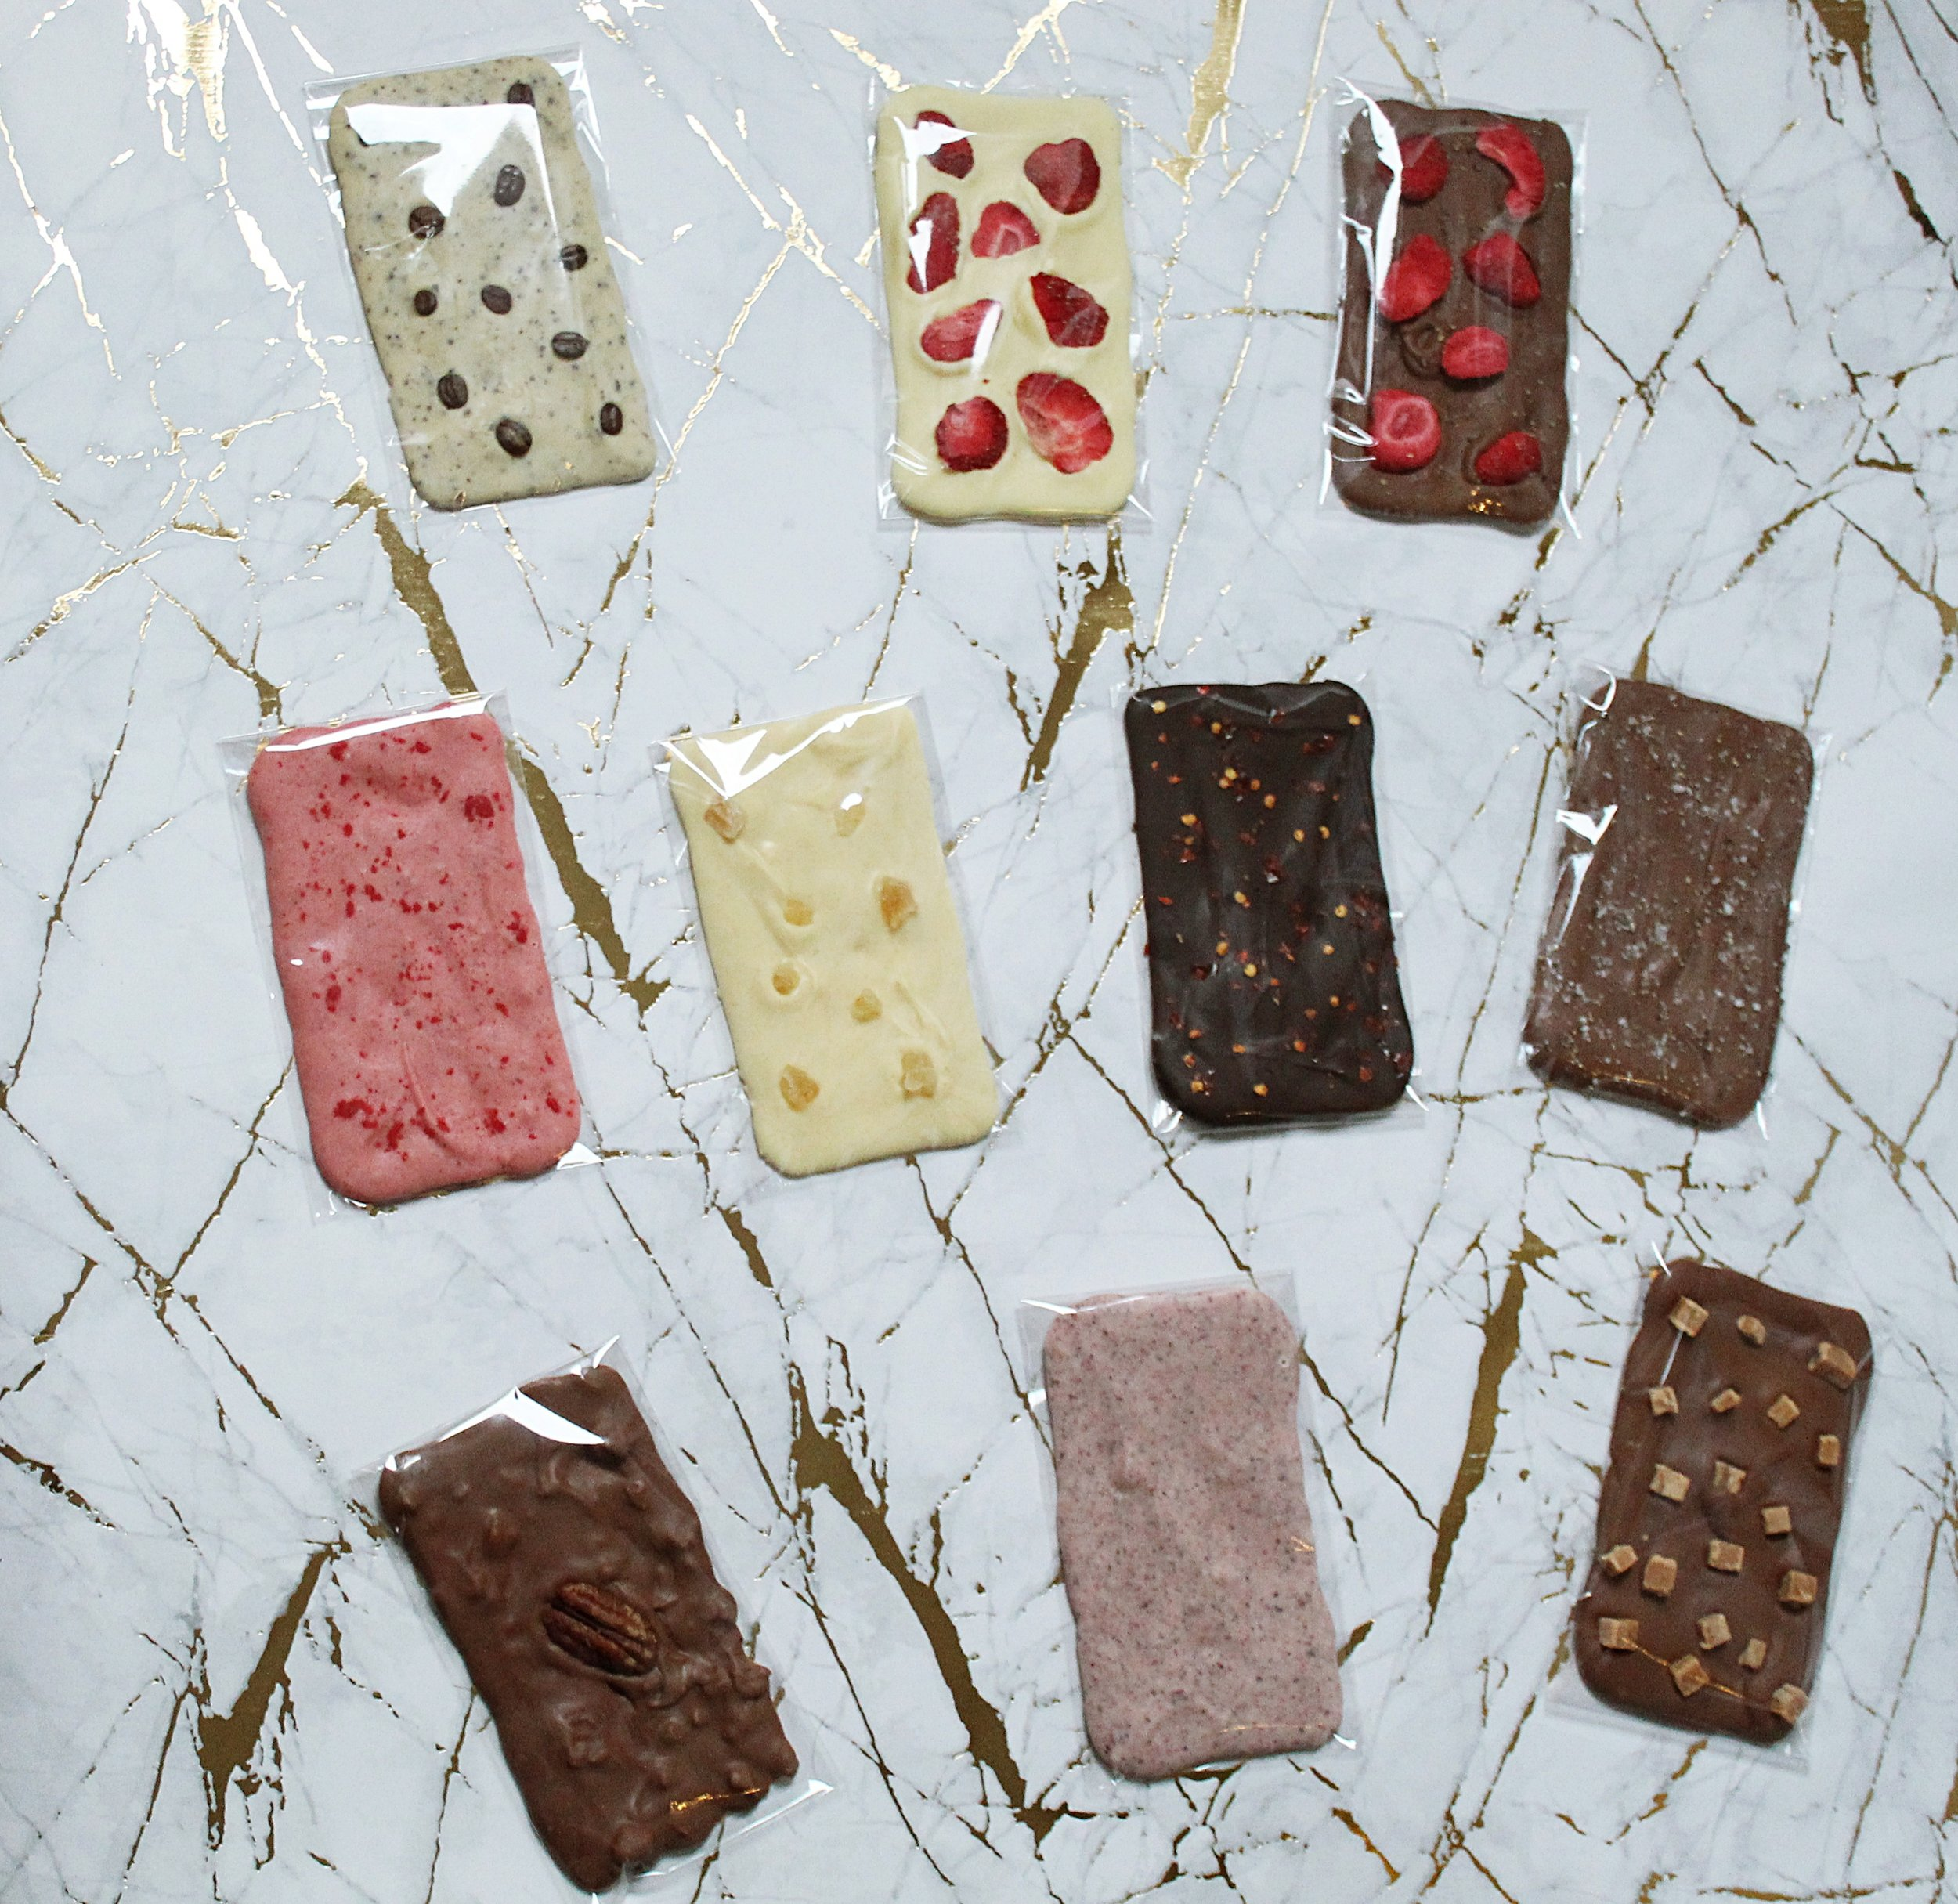 Our innovative new collection of handmade and hand poured chocolate bars are available in over 25 flavour and chocolate type combinations. Flavours vary from classic combinations to some more adventurous!